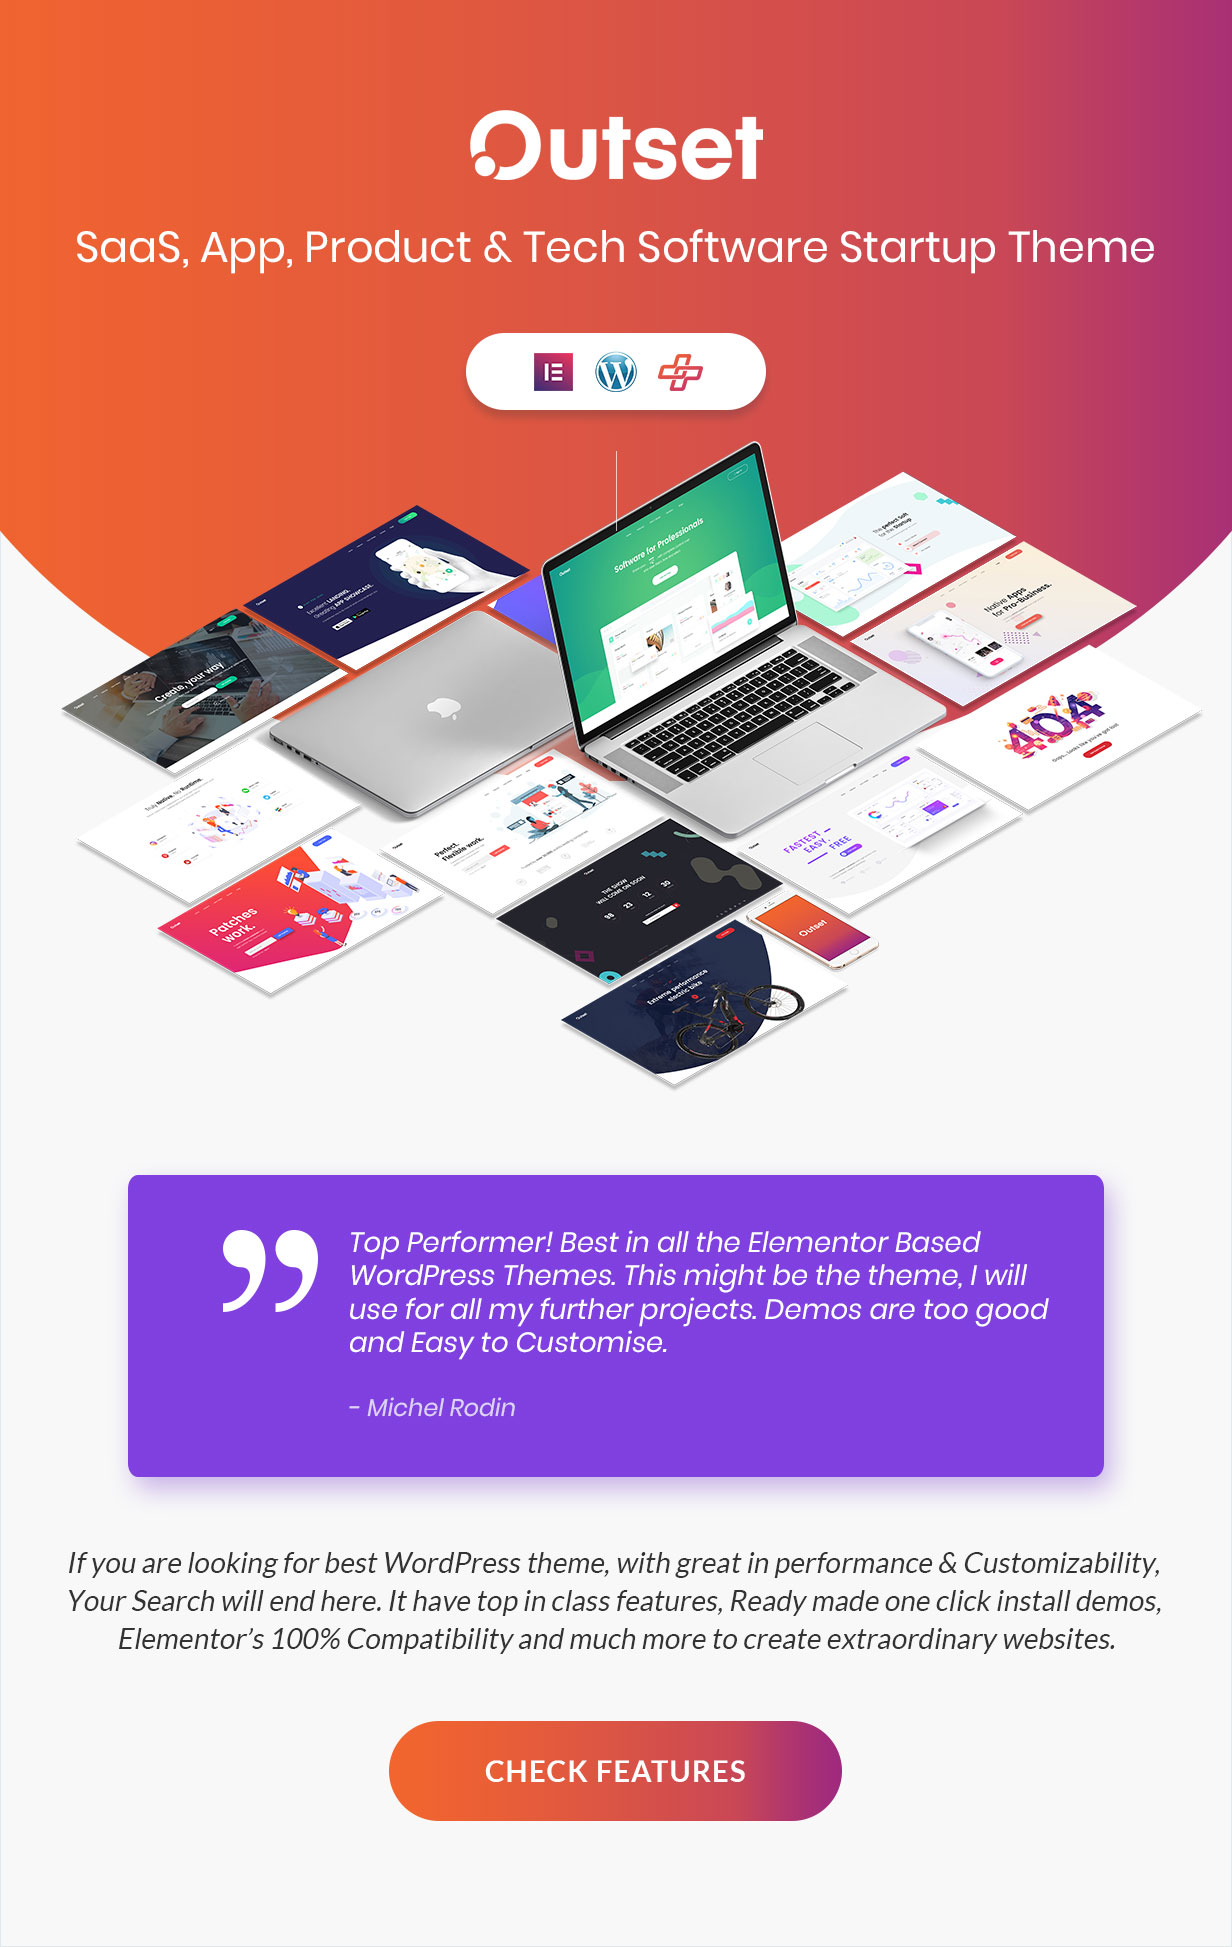 The Outset - SaaS, App, Product & Tech Software Startup Theme - 1